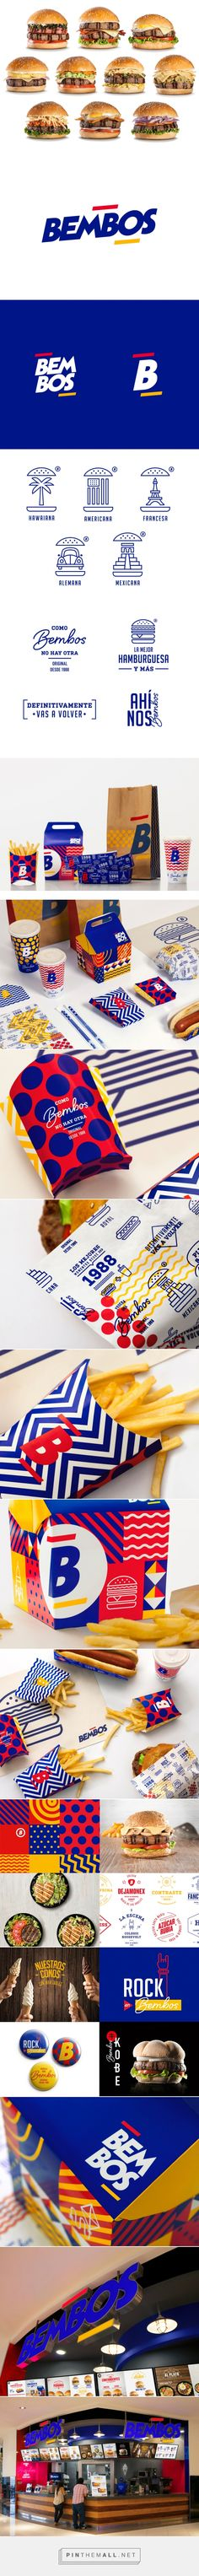 Bembos on Behance... - a grouped images picture - Pin Them All